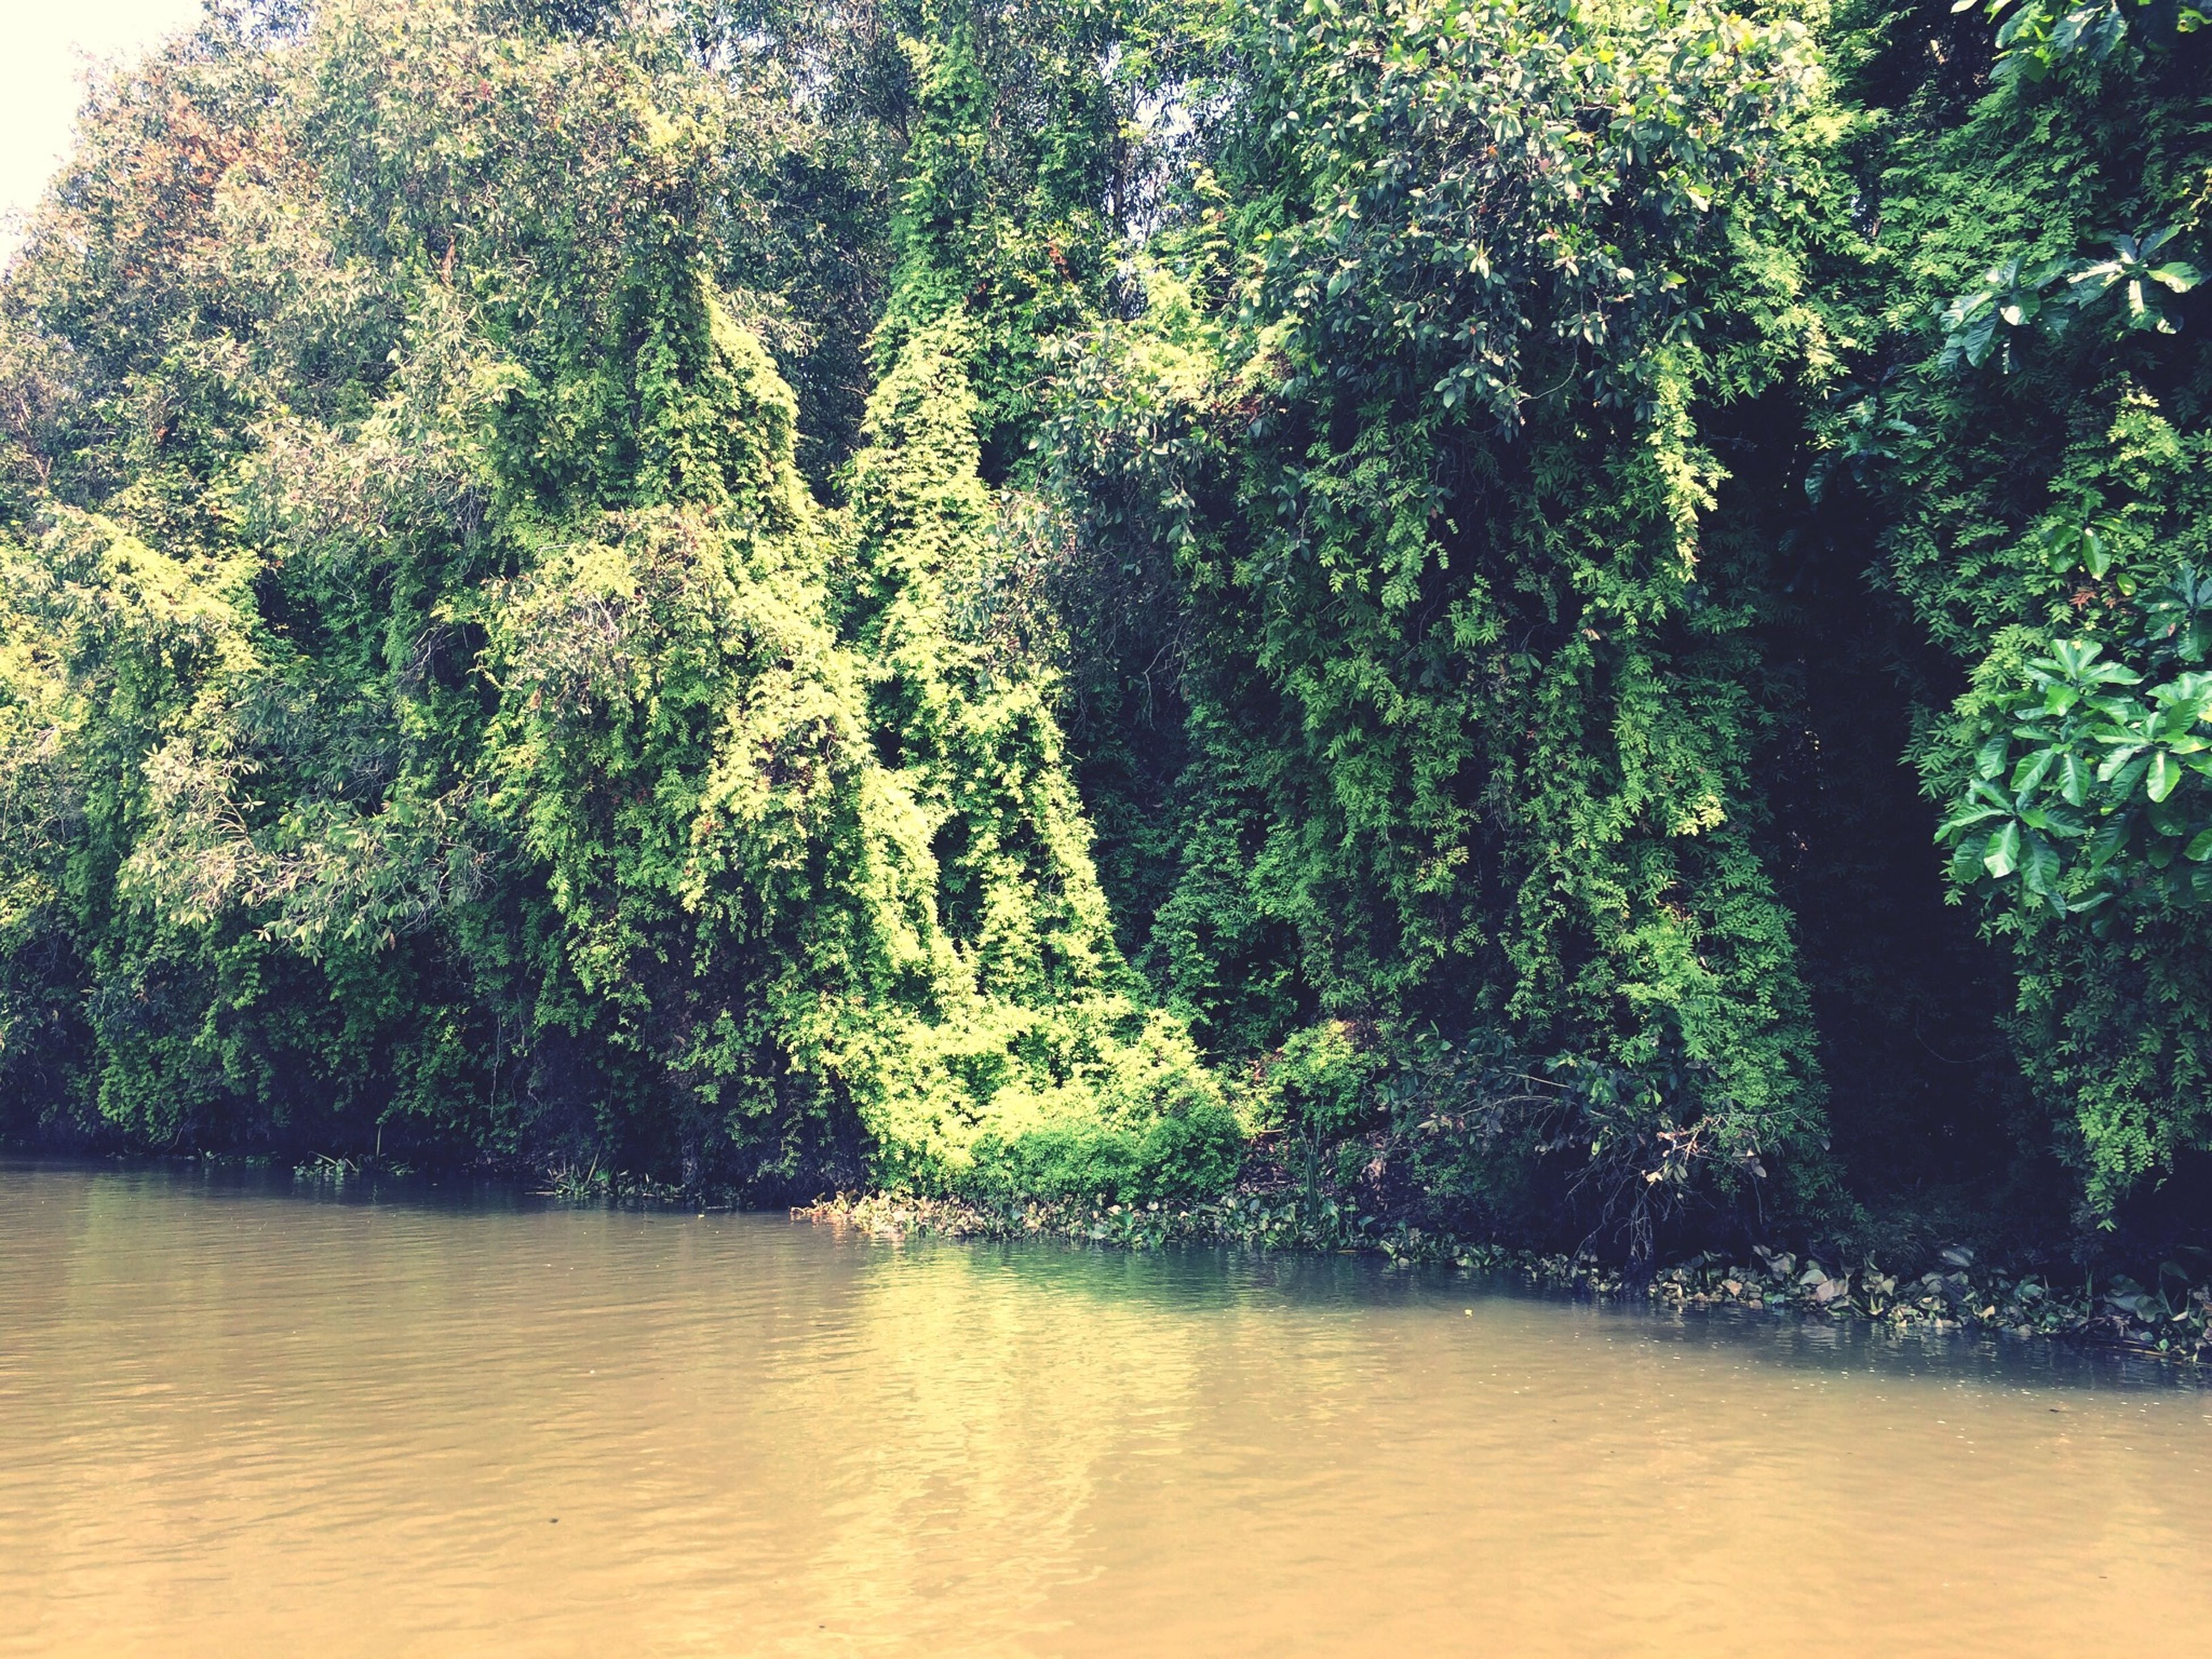 tree, growth, water, waterfront, tranquility, tranquil scene, beauty in nature, nature, scenics, green color, lush foliage, idyllic, no people, outdoors, day, plant, river, branch, lake, sunlight